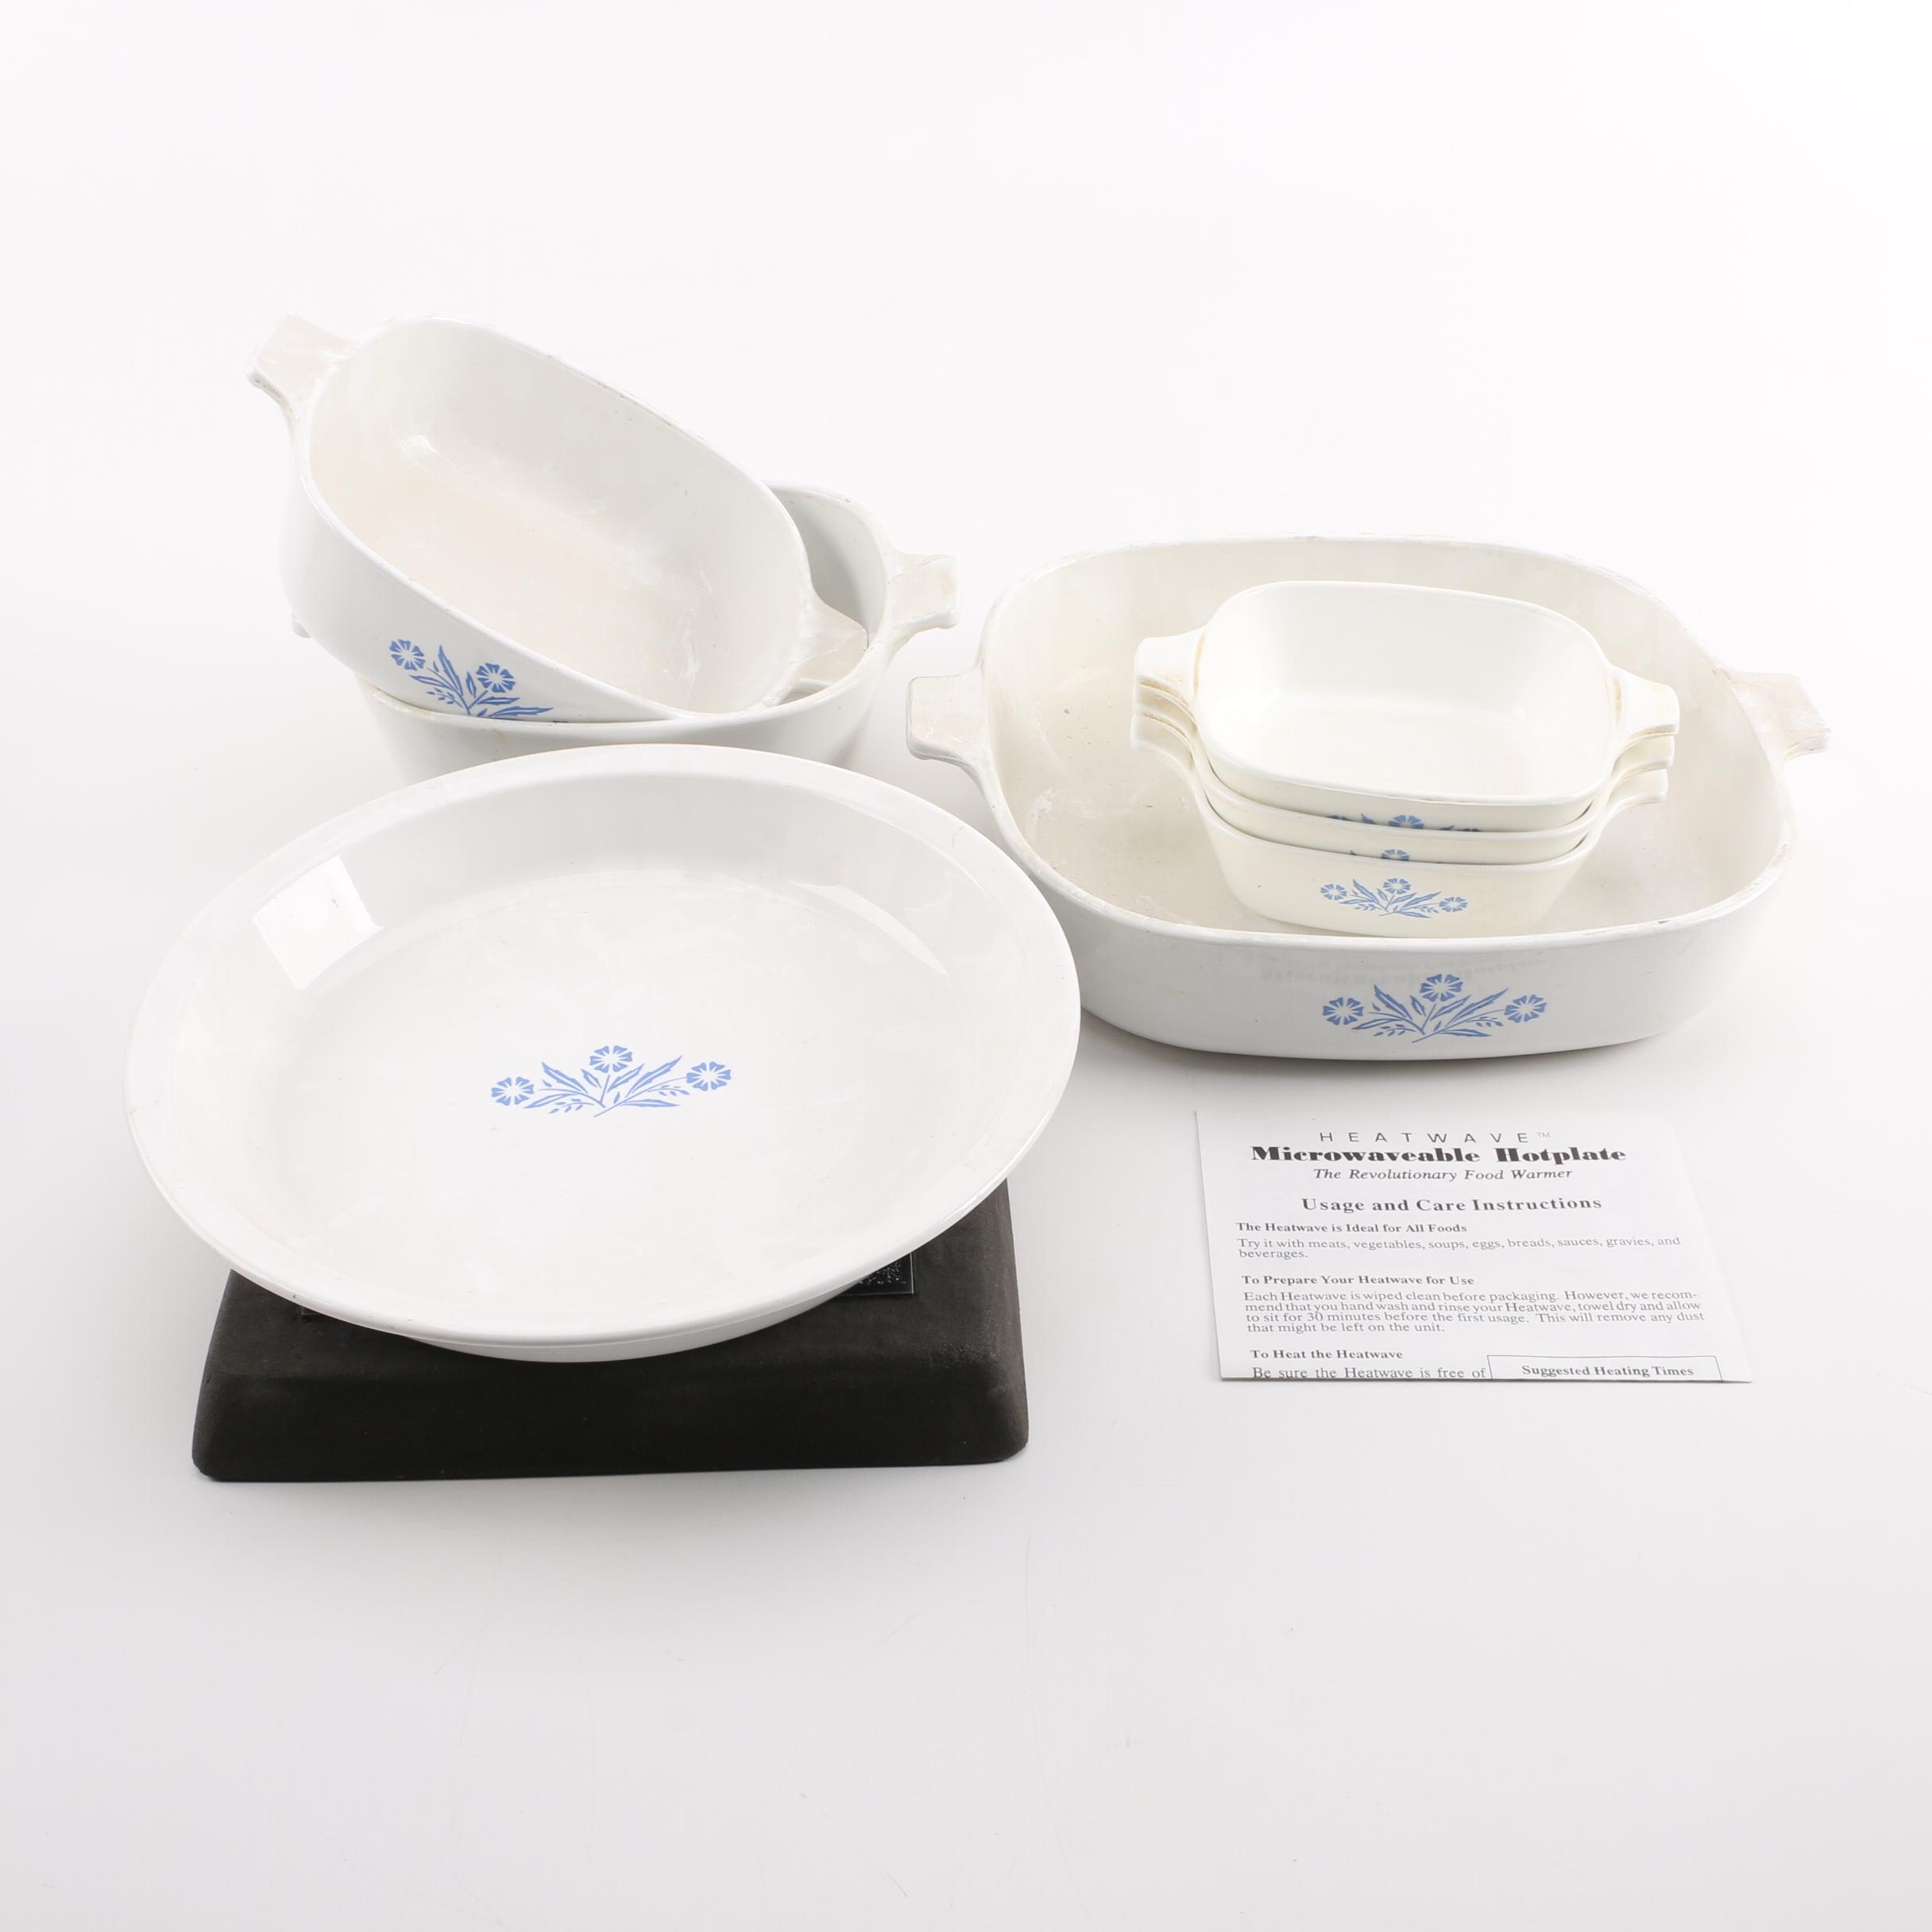 "Corning Ware ""Blue Cornflower"" and Microwaveable Stone Hot Plate"